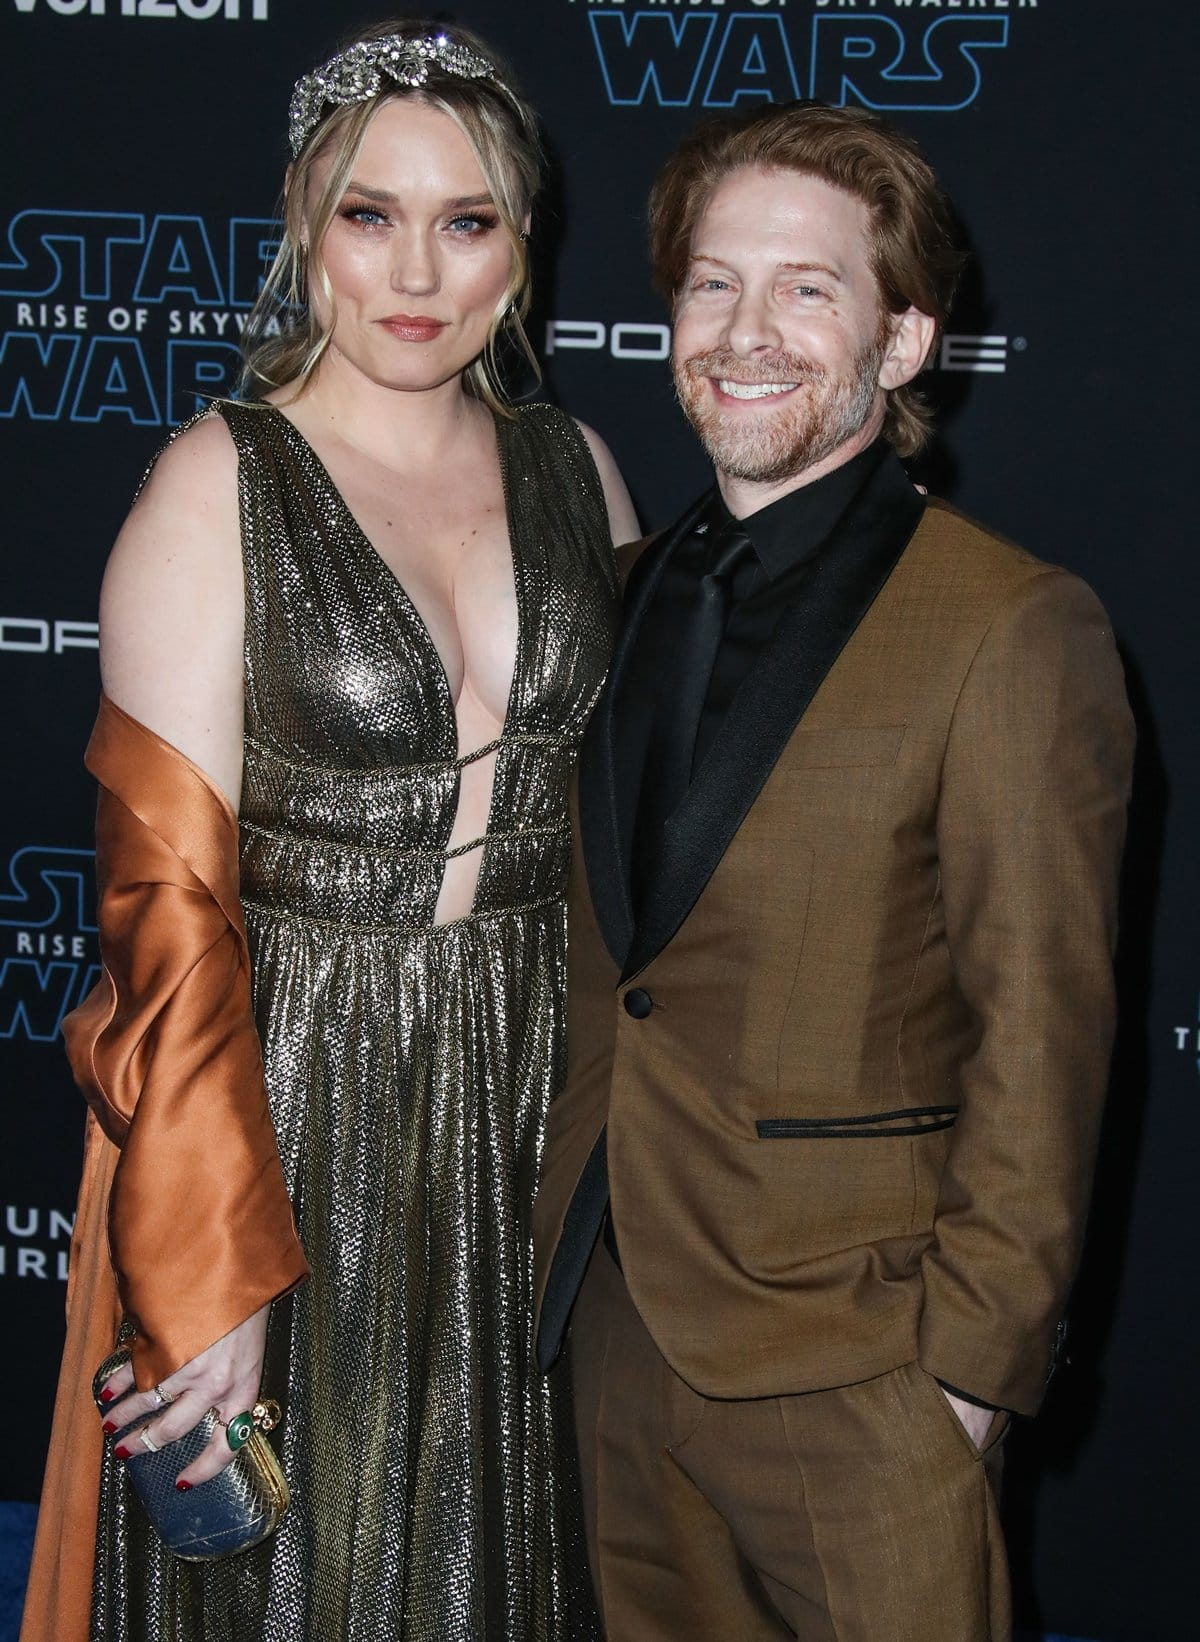 Clare Grant and Seth Green in 2007 at the Golden Apple Comics and married on May 1, 2010, at Skywalker Ranch in Marin County, California